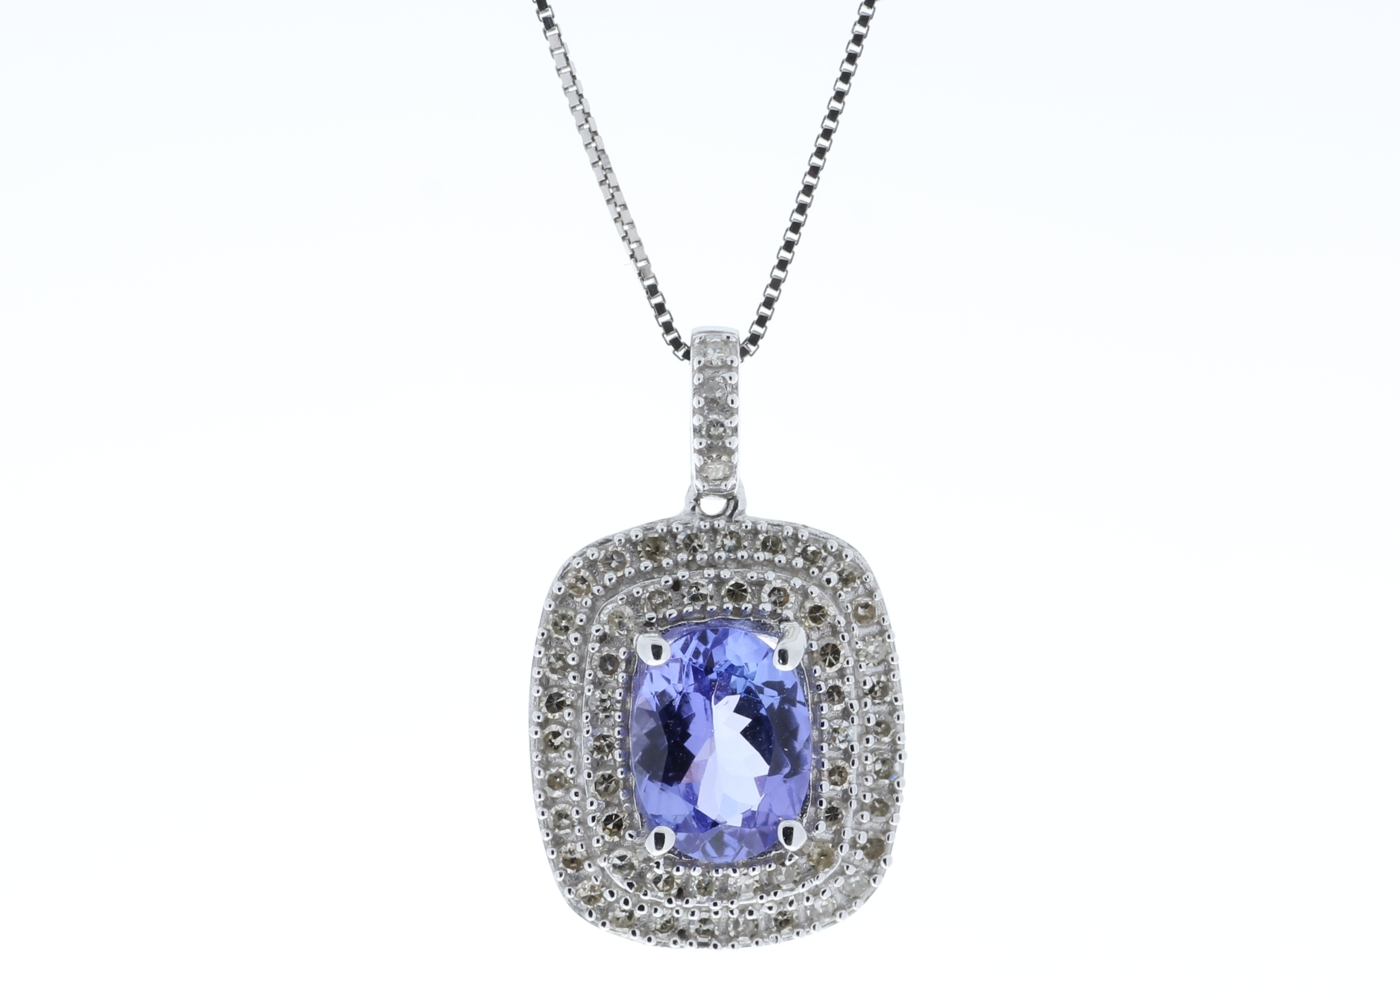 9ct White Gold Oval Tanzanite And Diamond Cluster Pendant 0.28 Carats - Image 2 of 6